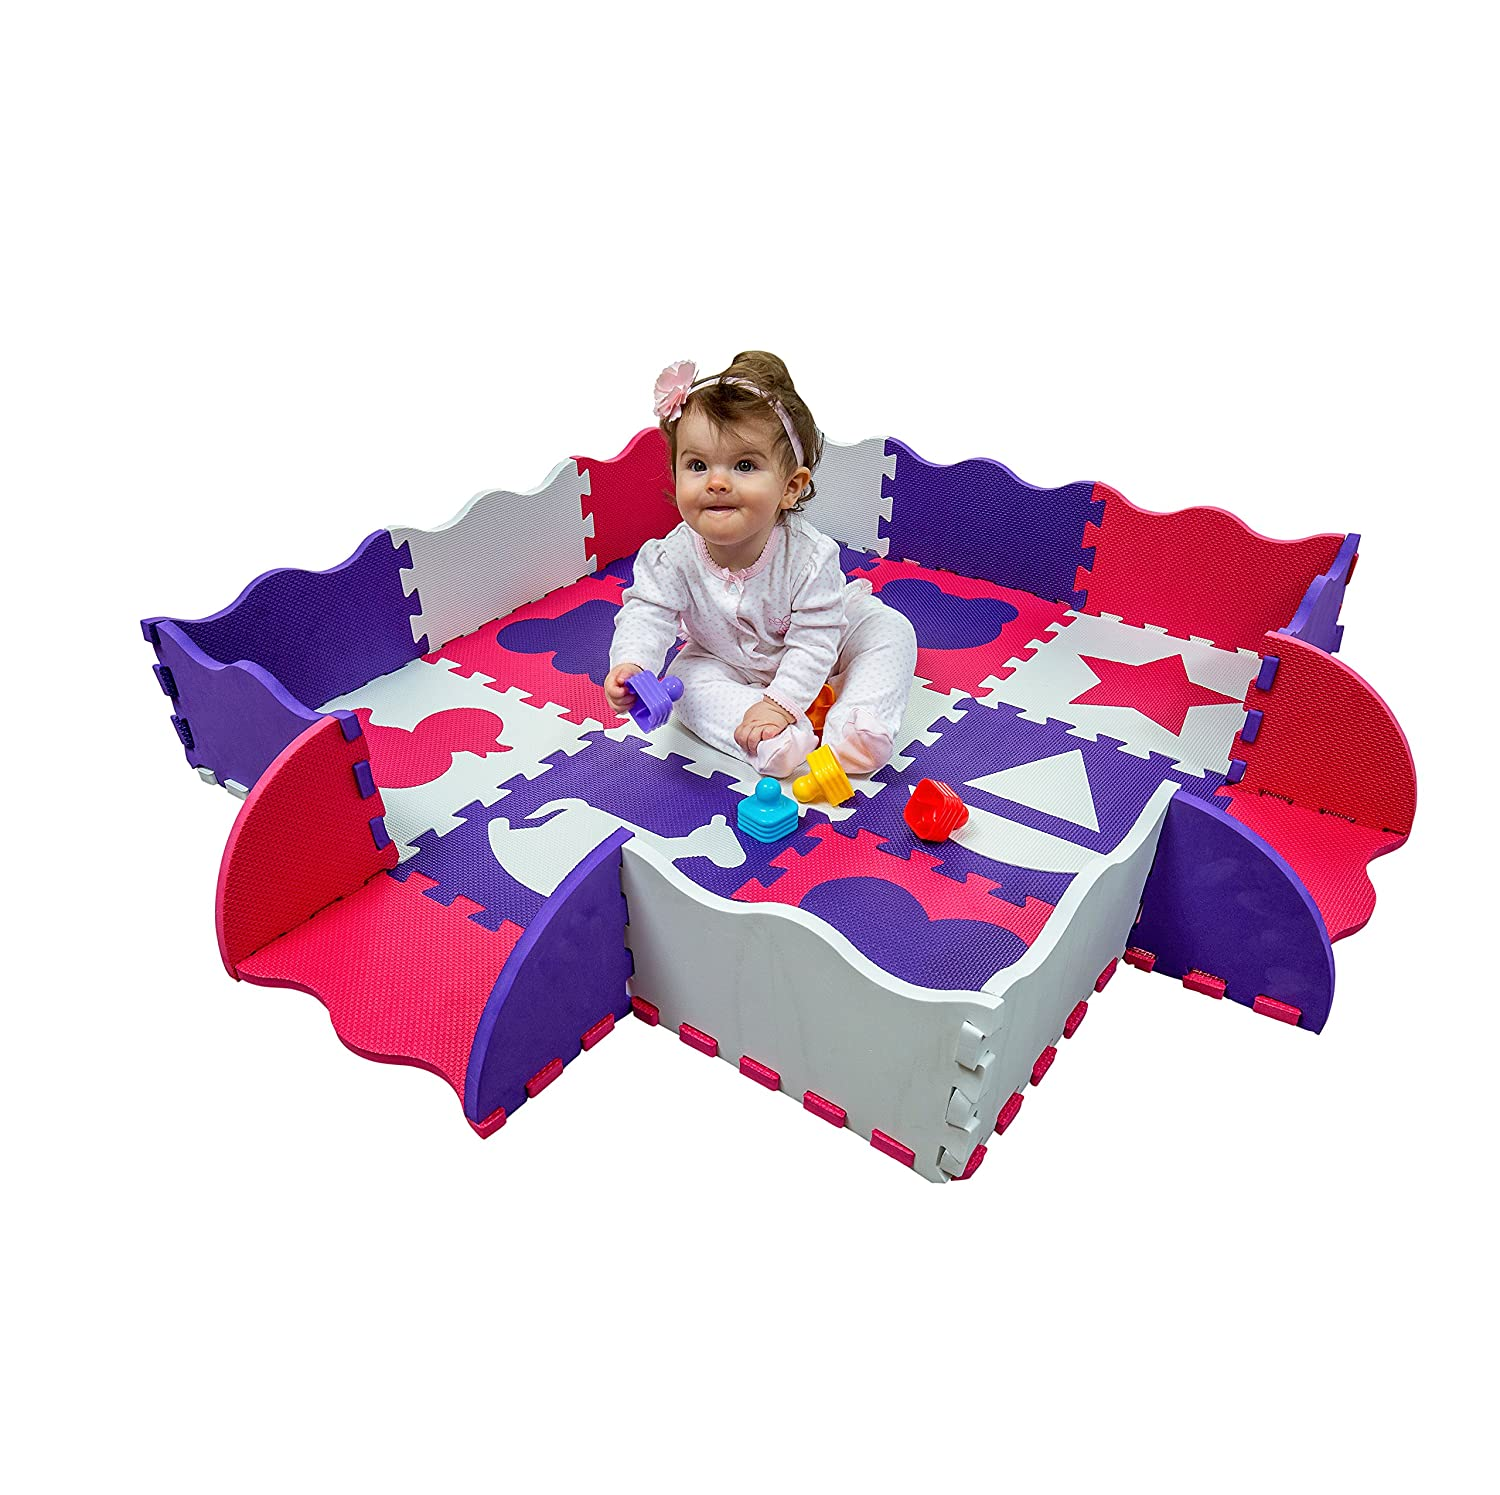 Non-Toxic Baby Play Mat for Infants with Collapsible Fence Edging for Infant Tummy Time and Activity. 48